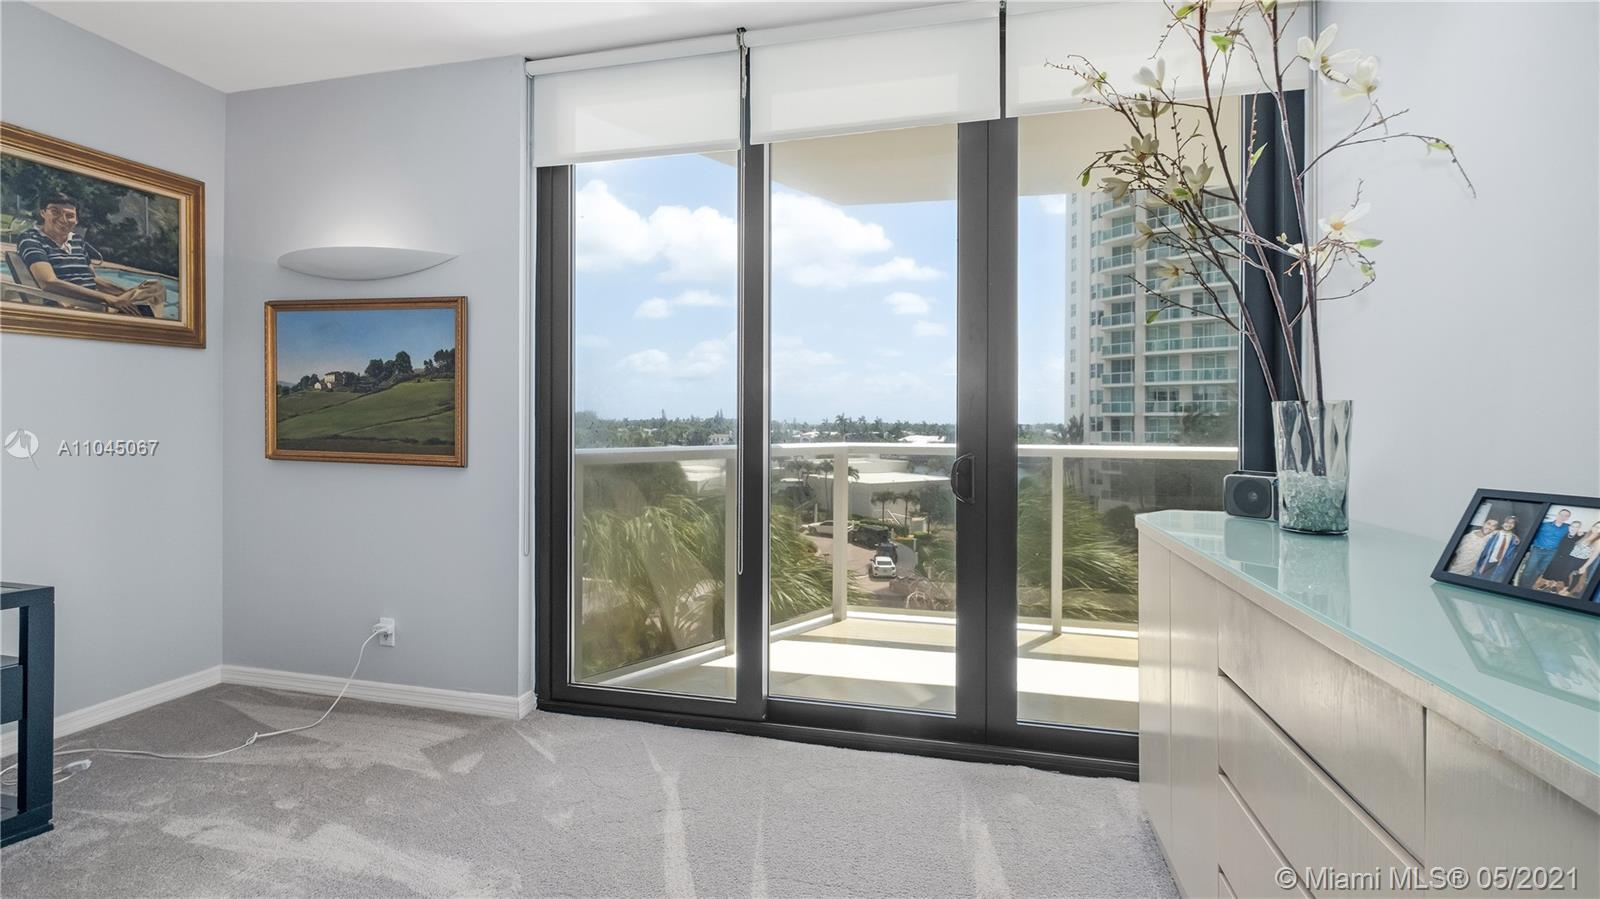 Photo of 20281 Country Club Dr #314, Aventura, Florida, 33180 - Principal Bedroom with built-in wall unit